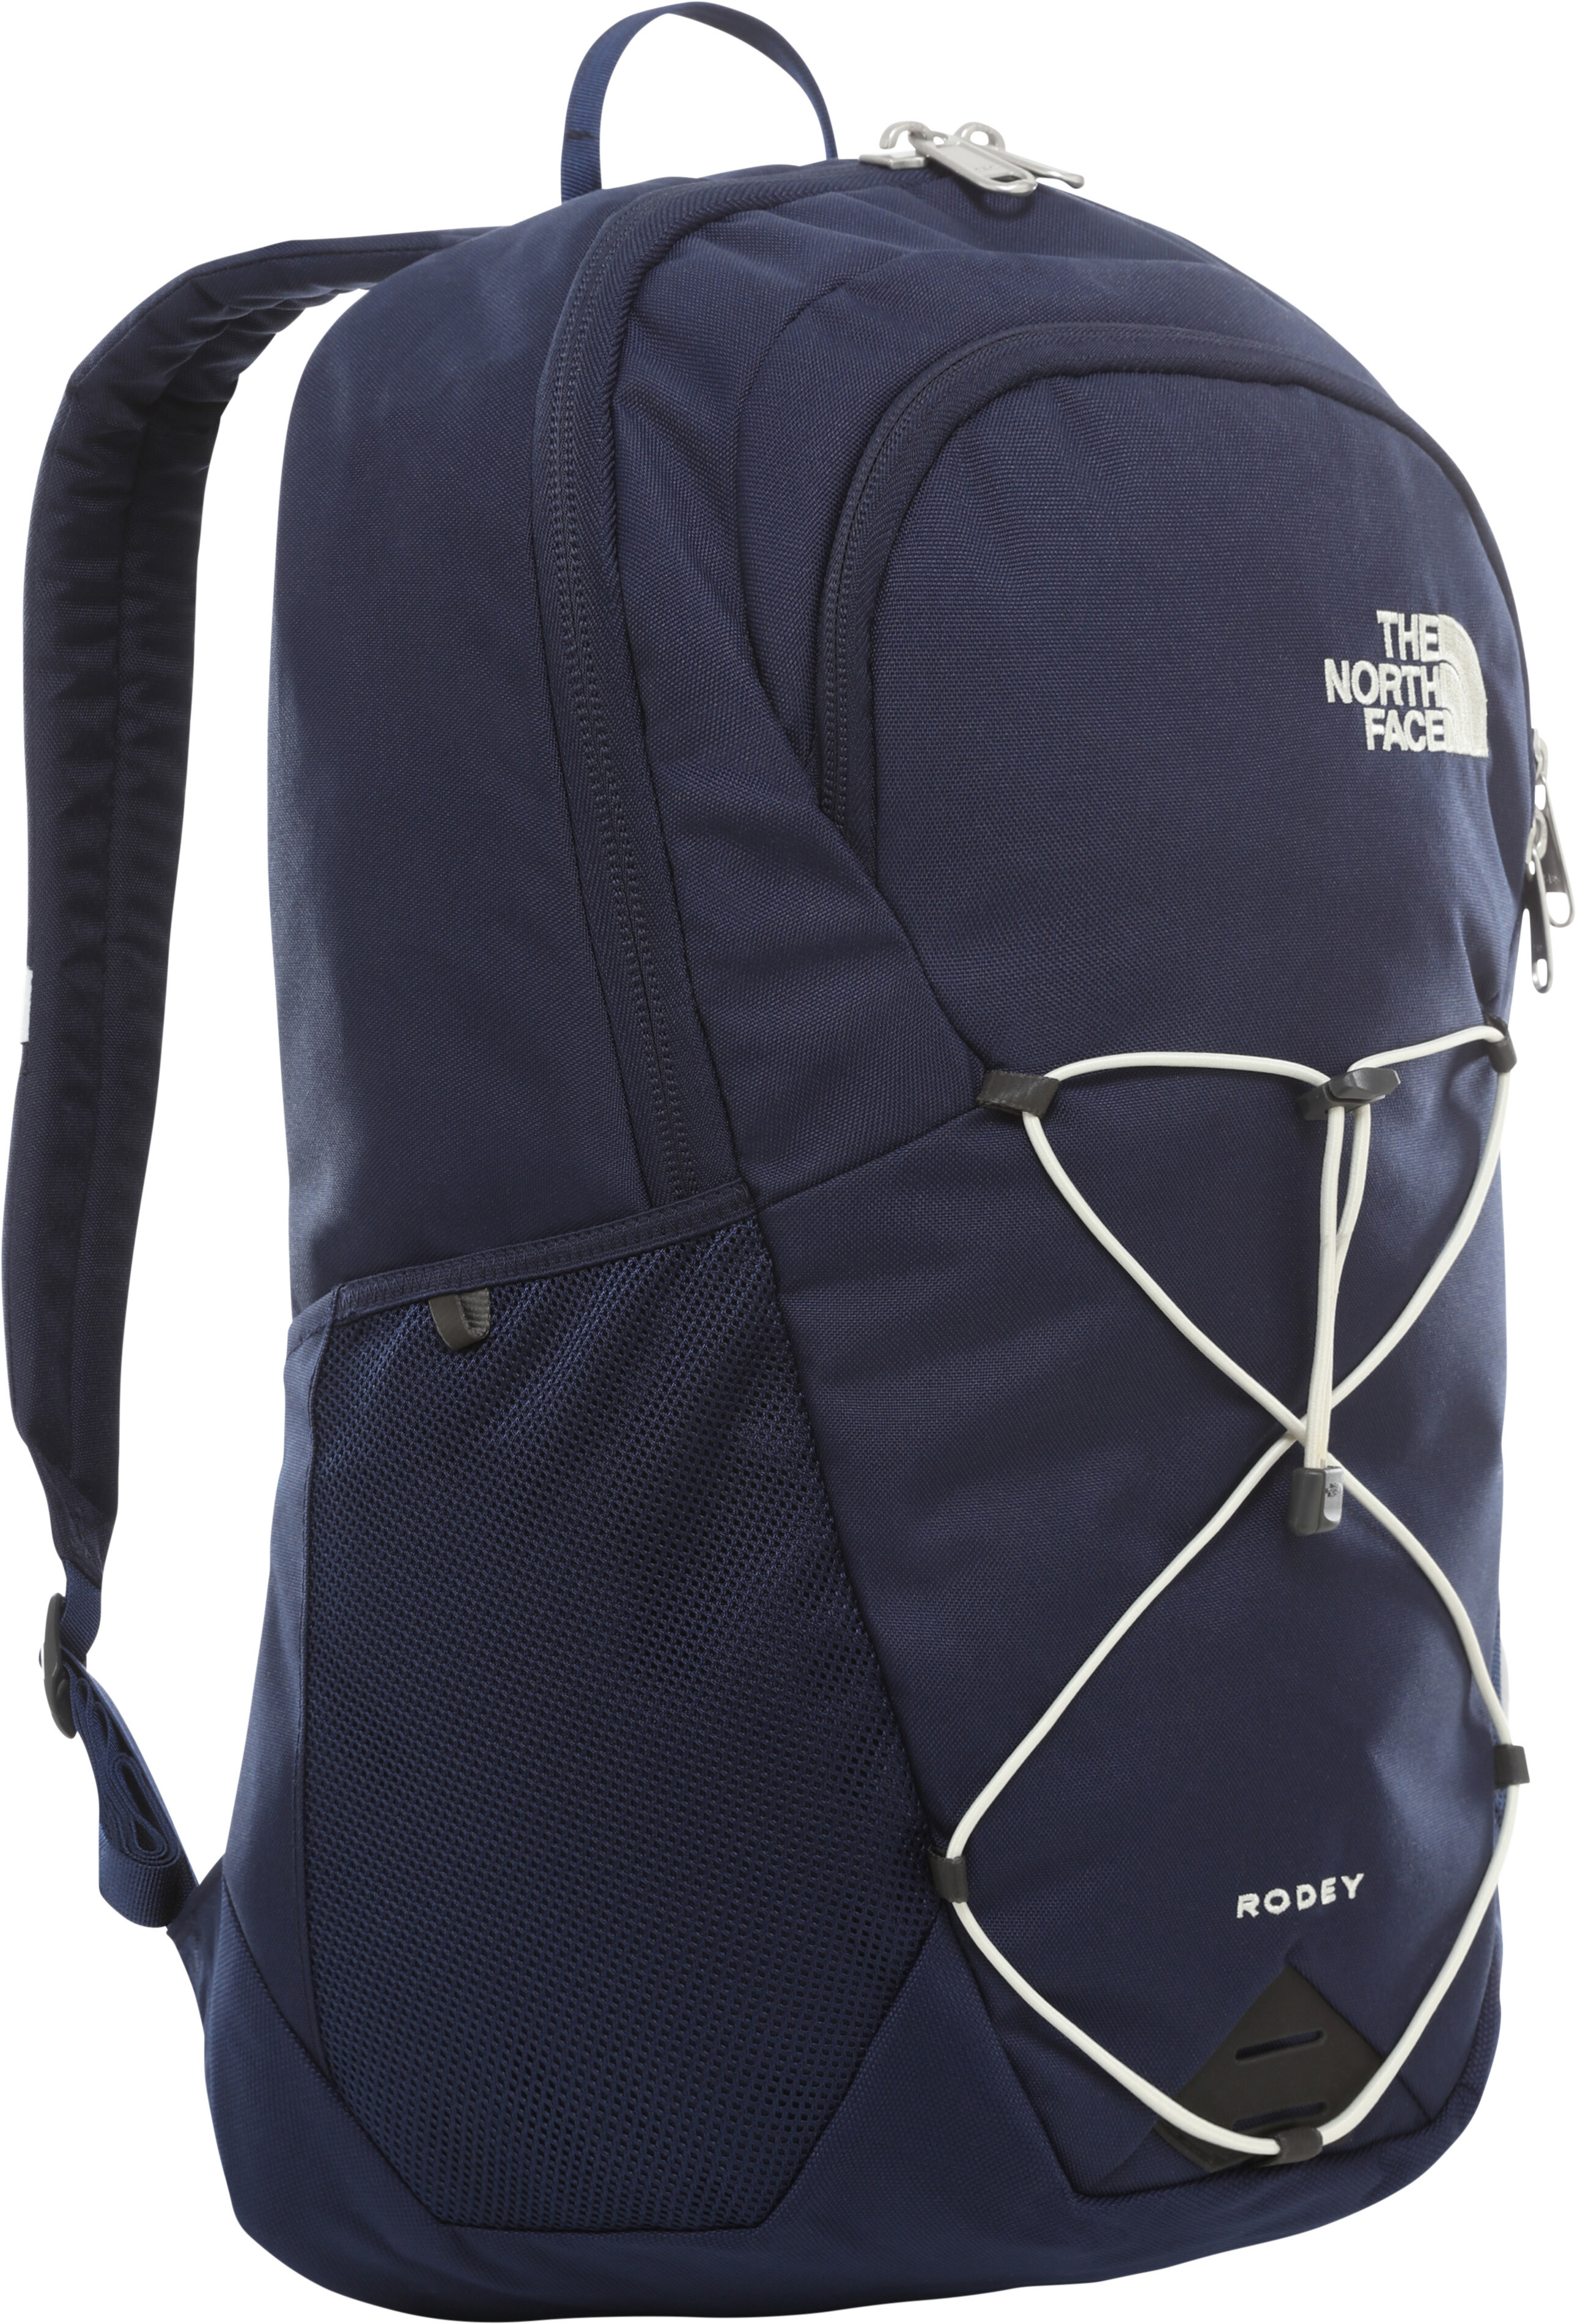 cef6db5a1 The North Face Rodey Backpack montague blue/vintage white